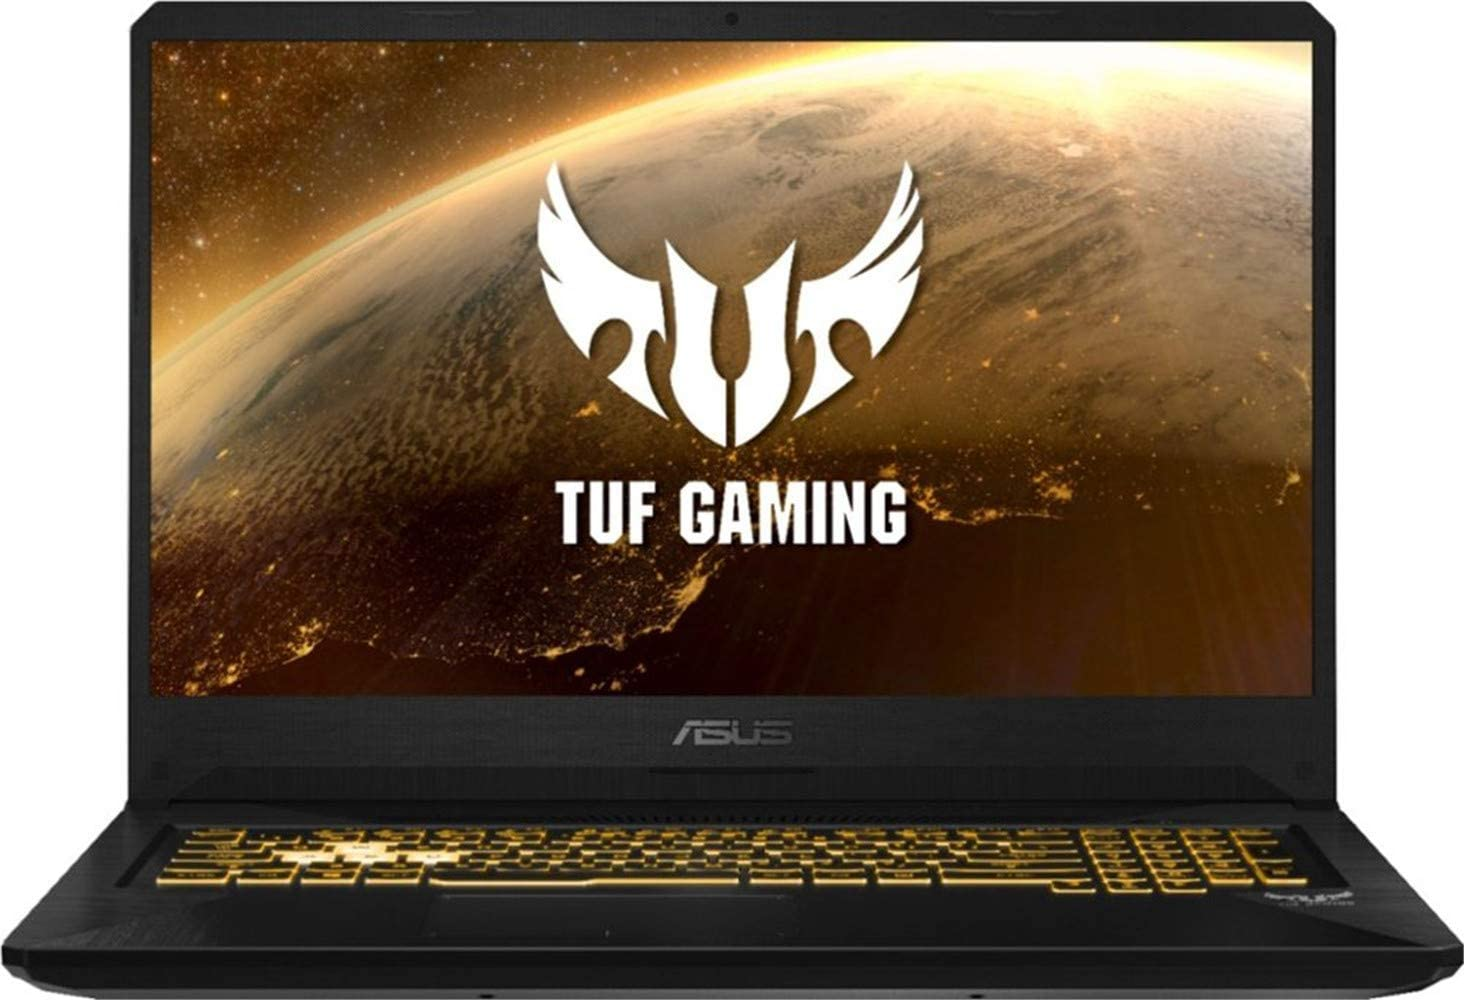 "2019 ASUS TUF 17.3"" FHD Gaming Laptop Computer, AMD Ryzen 7 3750H Quad-Core up to 4.0GHz, 24GB DDR4 RAM, 512GB PCIE SSD + 2TB HDD, GeForce GTX 1650 4GB, 802.11ac WiFi, Bluetooth 4.2, HDMI, Windows 10"